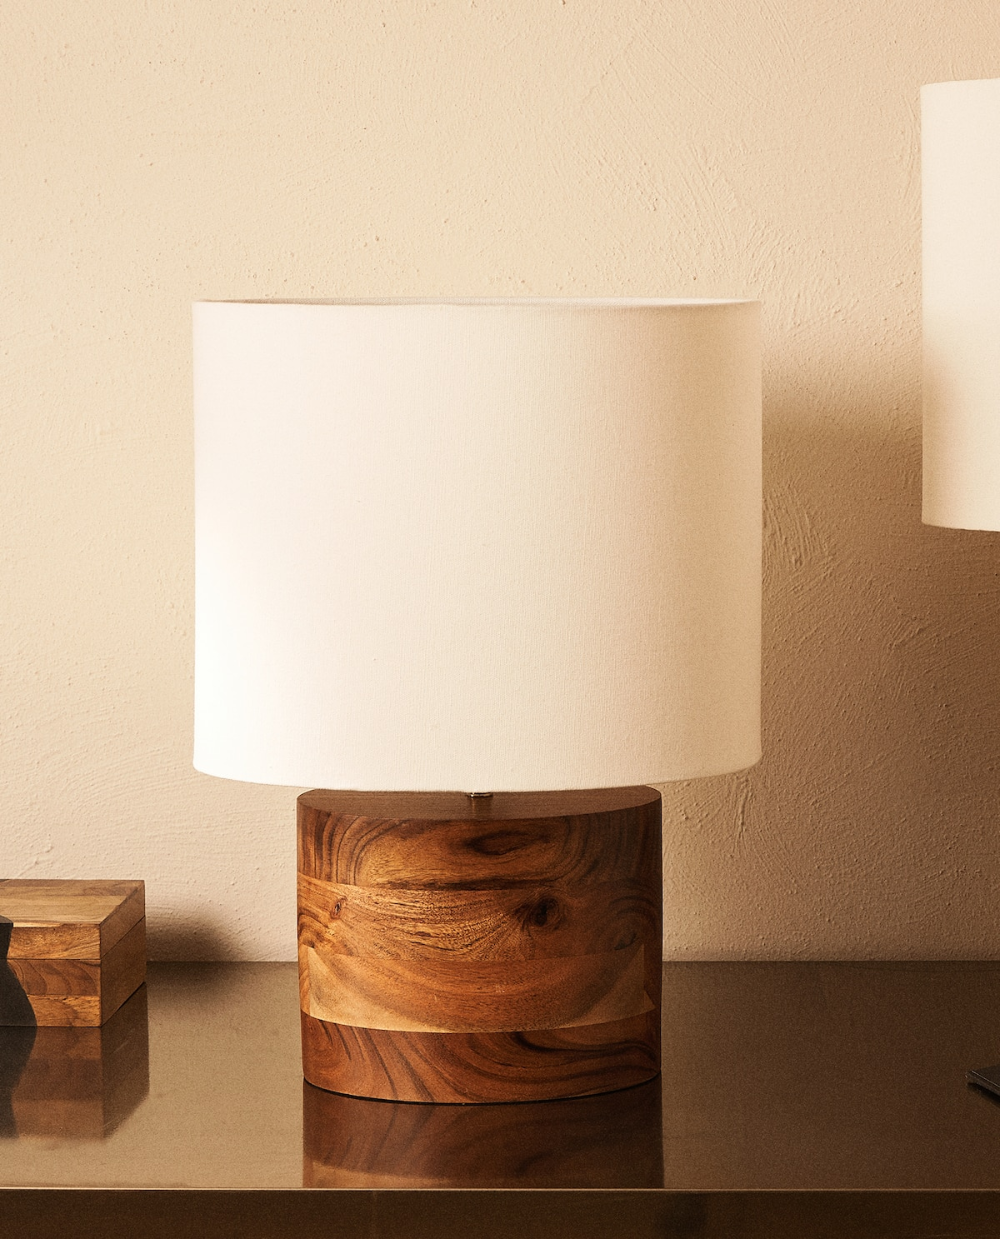 Image 6 Of The Product Table Lamp With Wooden Base Wooden Table Lamps Wooden Lamps Design Table Lamp